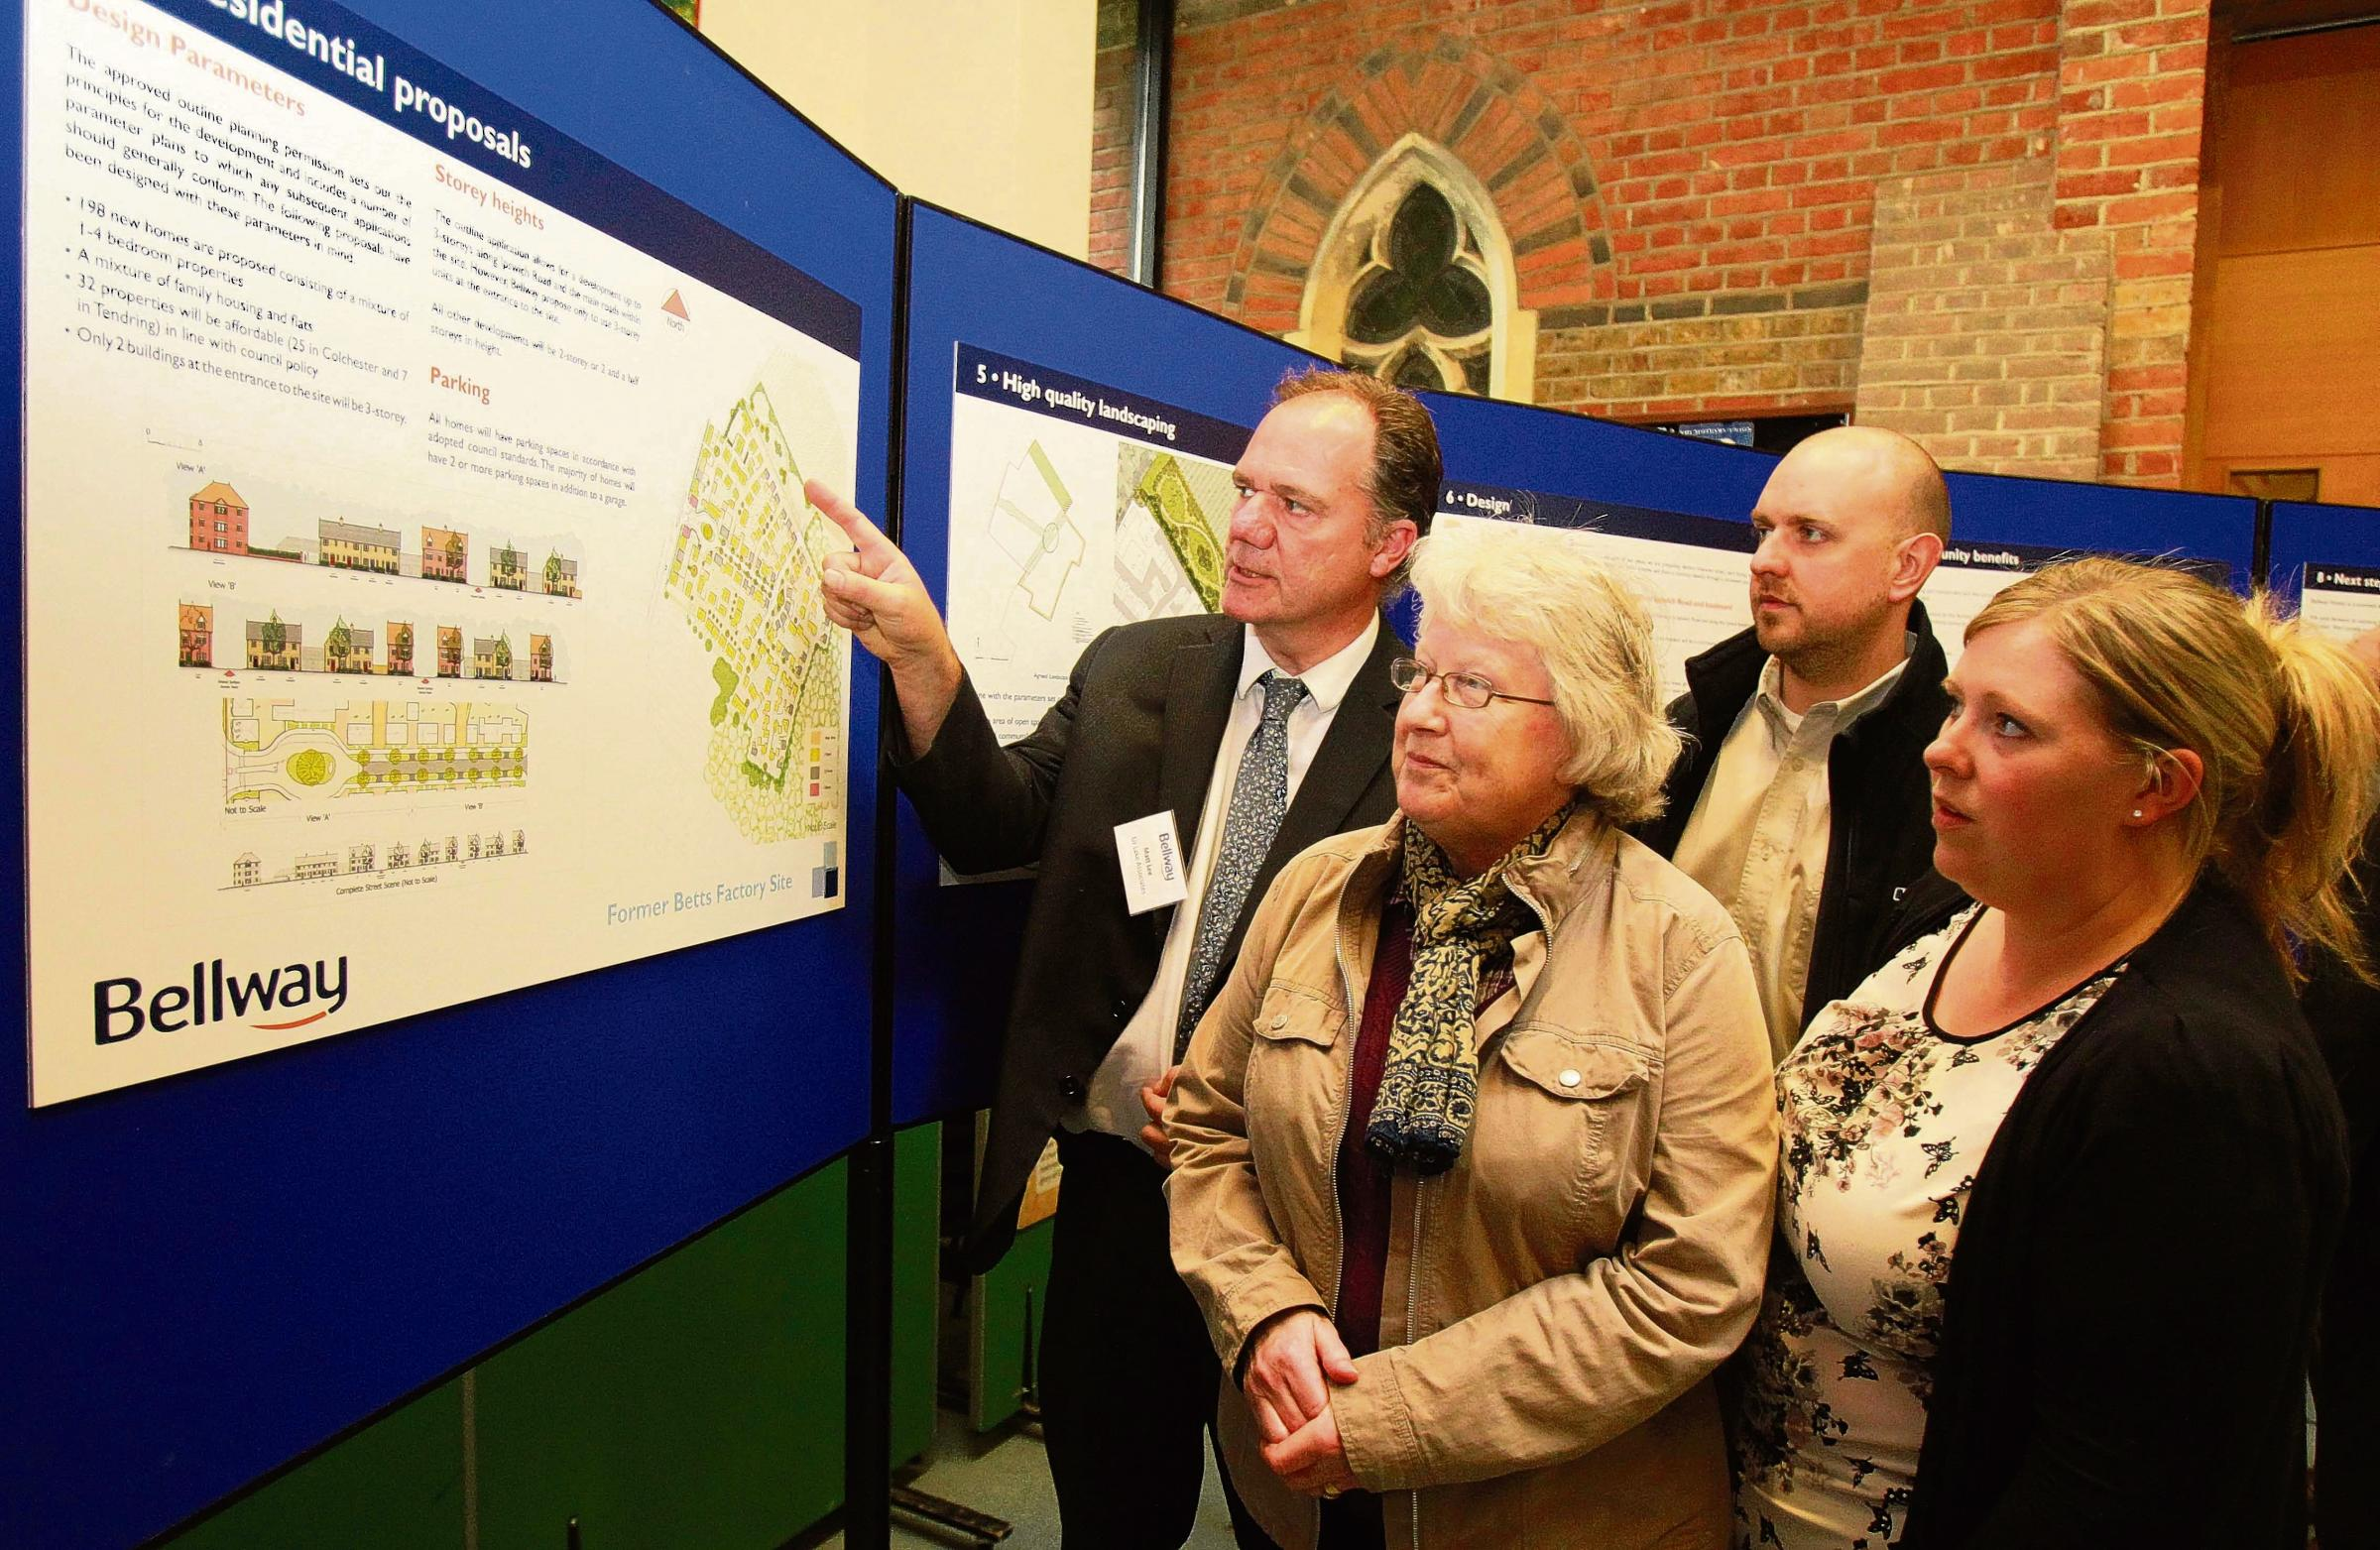 Homes on former Betts factory site could be ready within a year